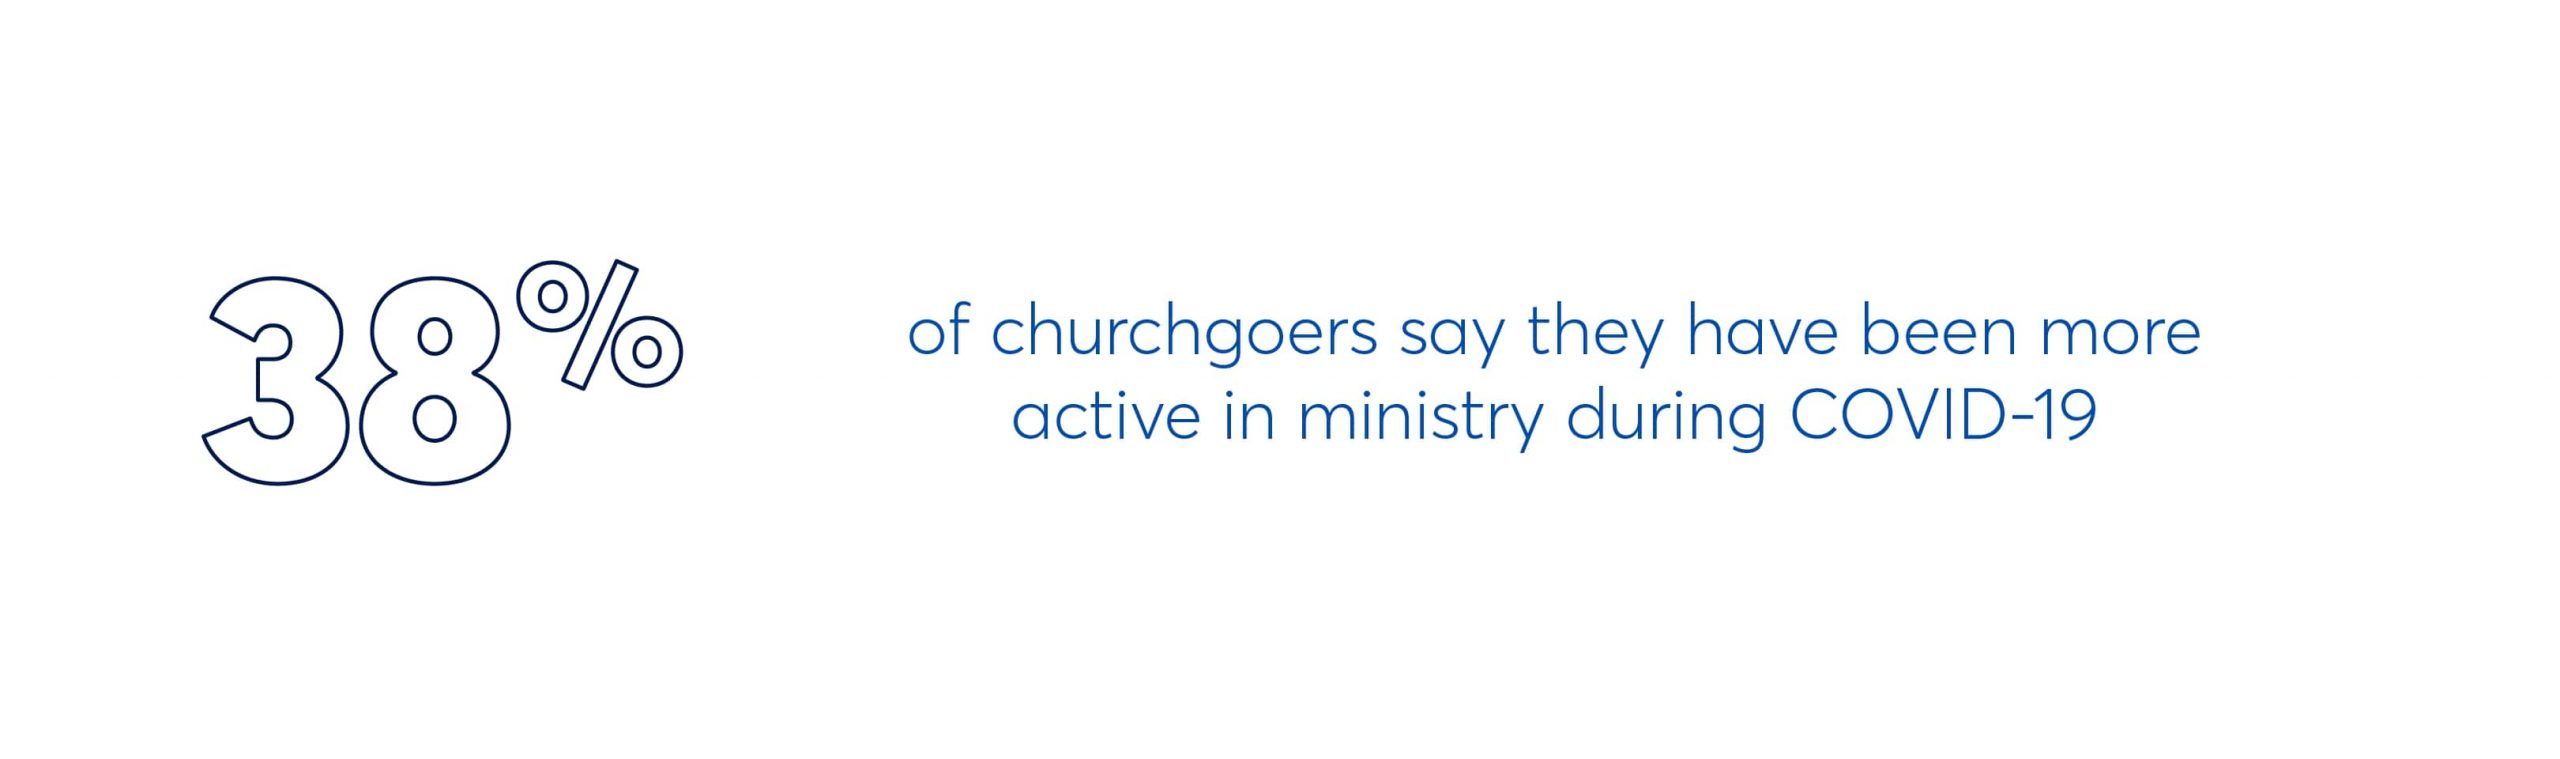 38% of churchgoers say they have been more active in ministry during COVID-19